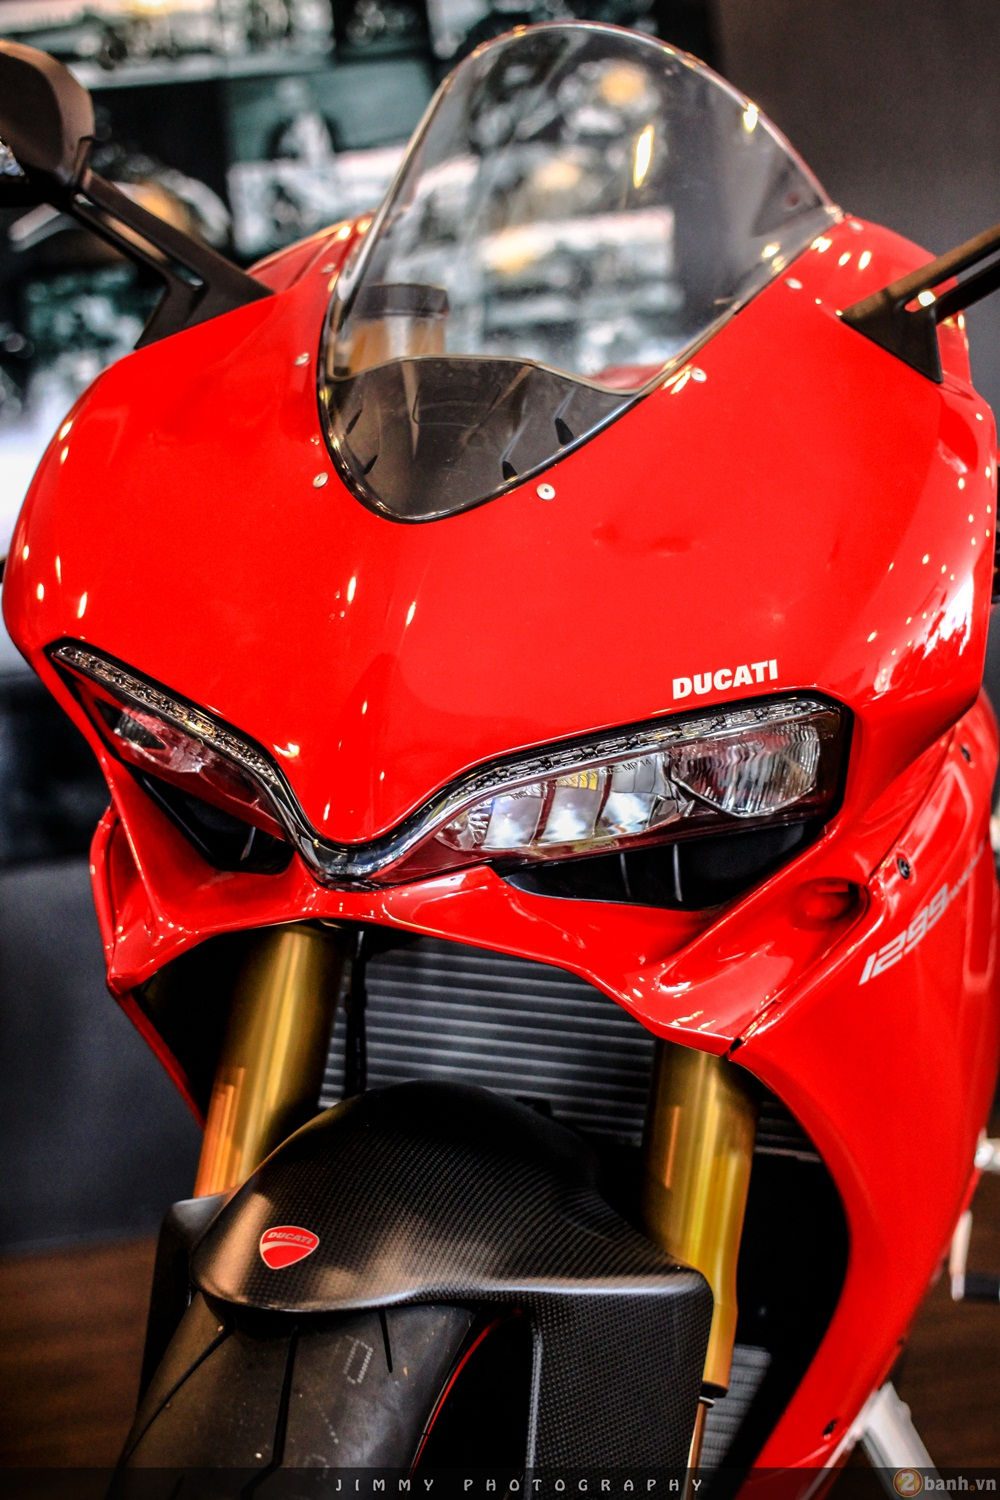 Chan dai Italy 1299 Panigale S chiec Super Sport gon nhe nhat hien nay - 9